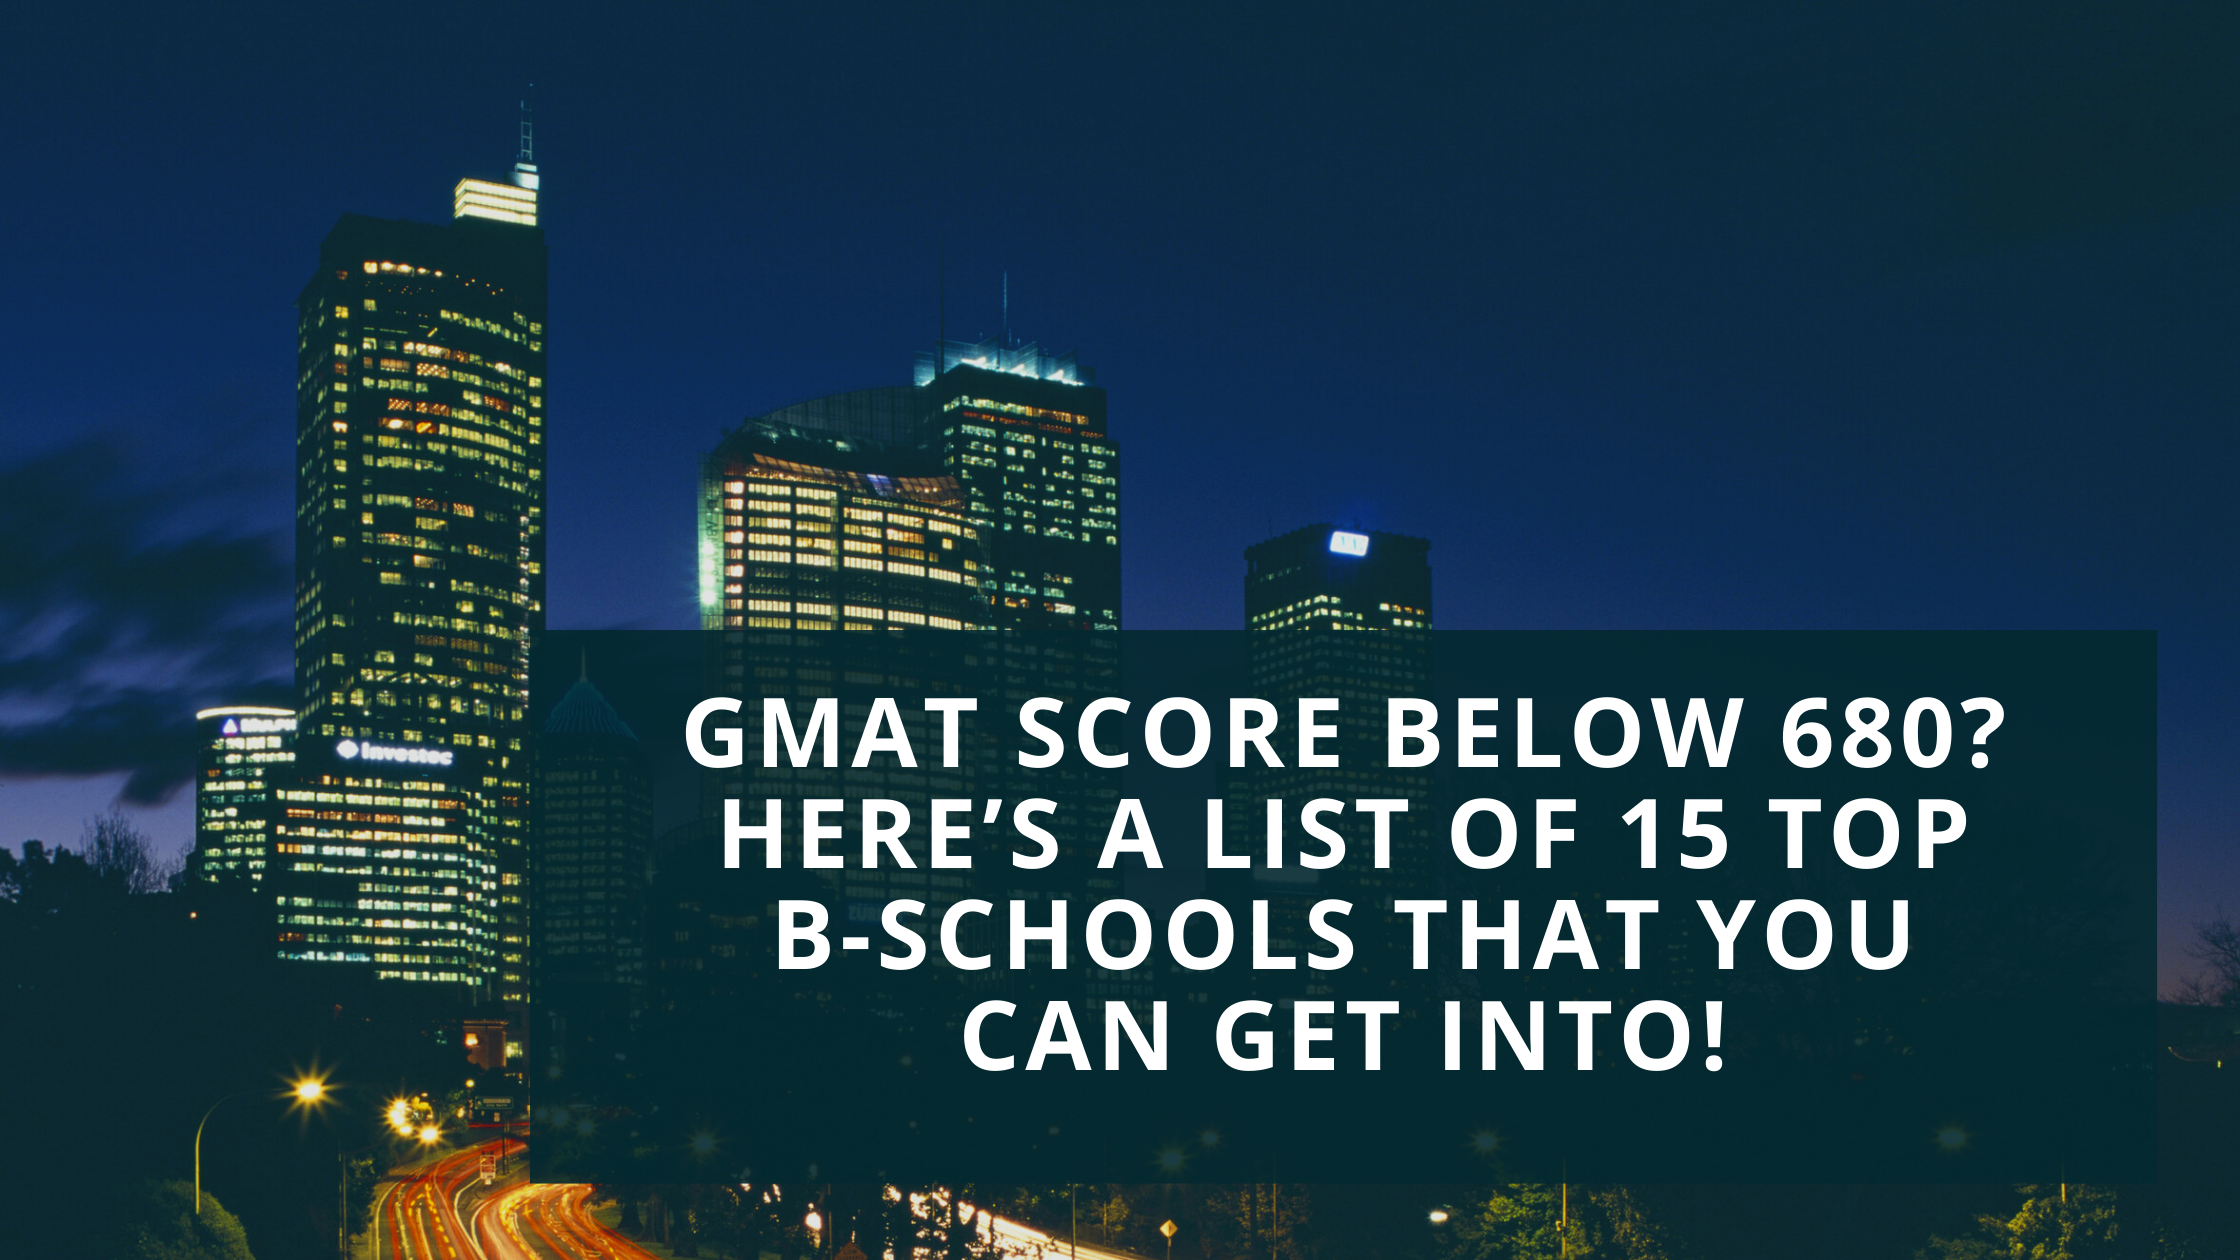 GMAT Score Below 680? Here's a List of 15 Top B-Schools That You Can Get Into!